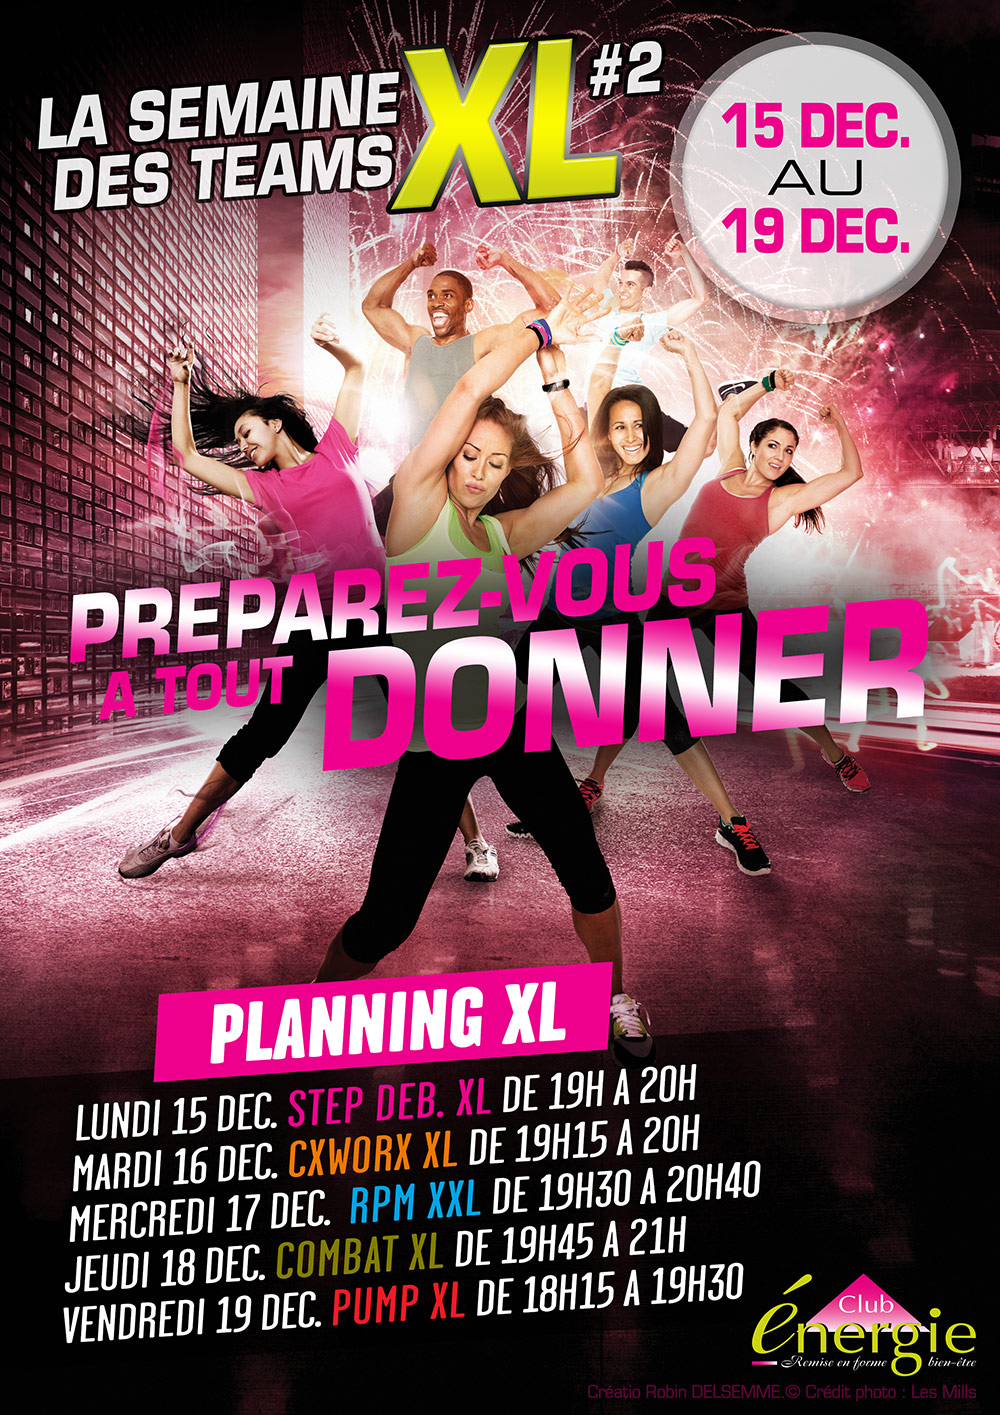 Club Energie Fitness Orleans Affiche Semaine Team XL 2 Les Mills